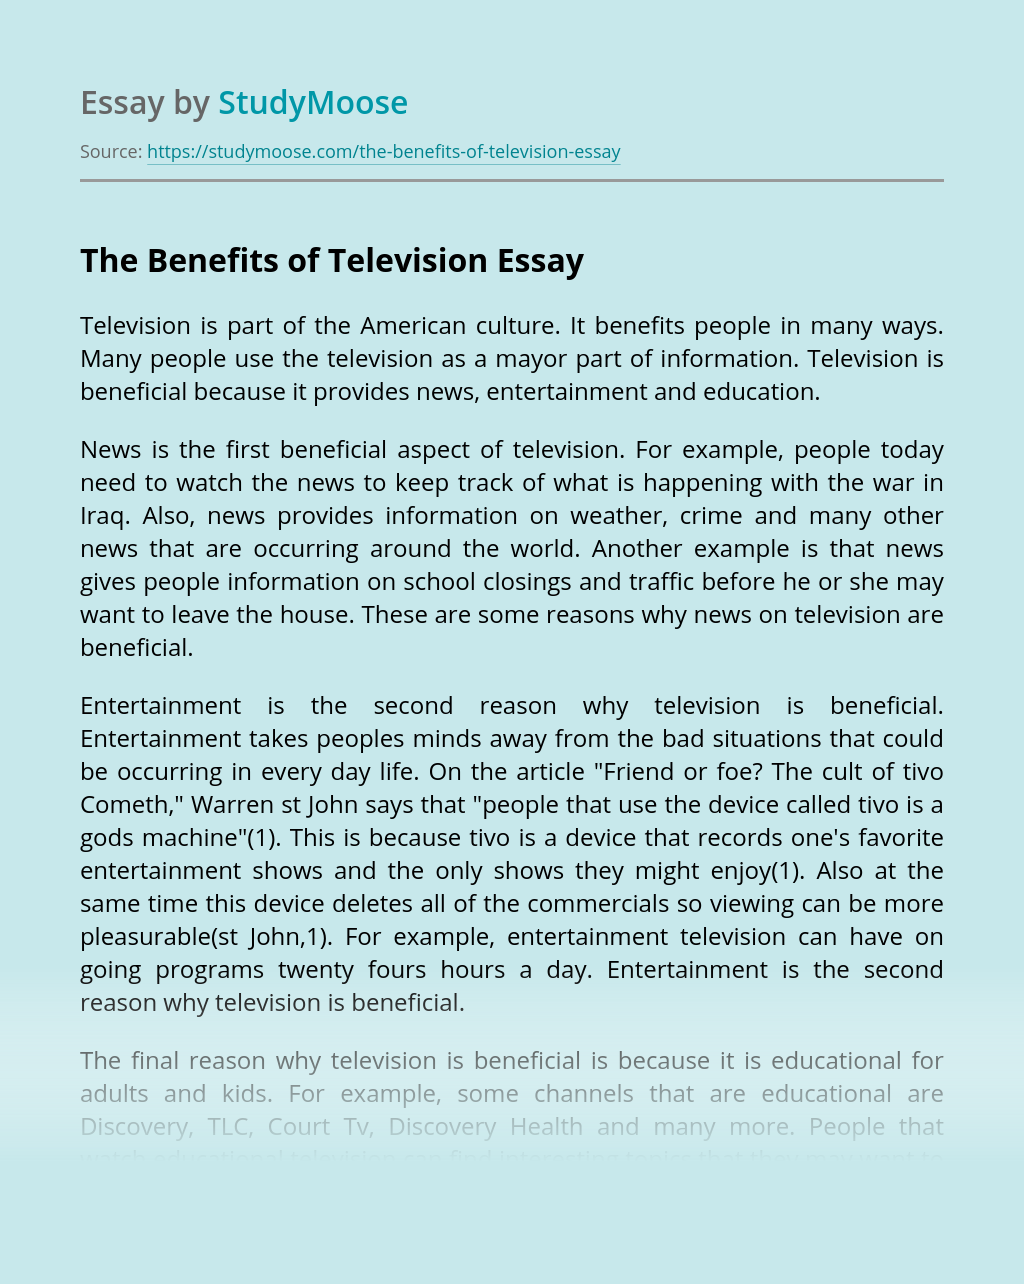 The Benefits of Television